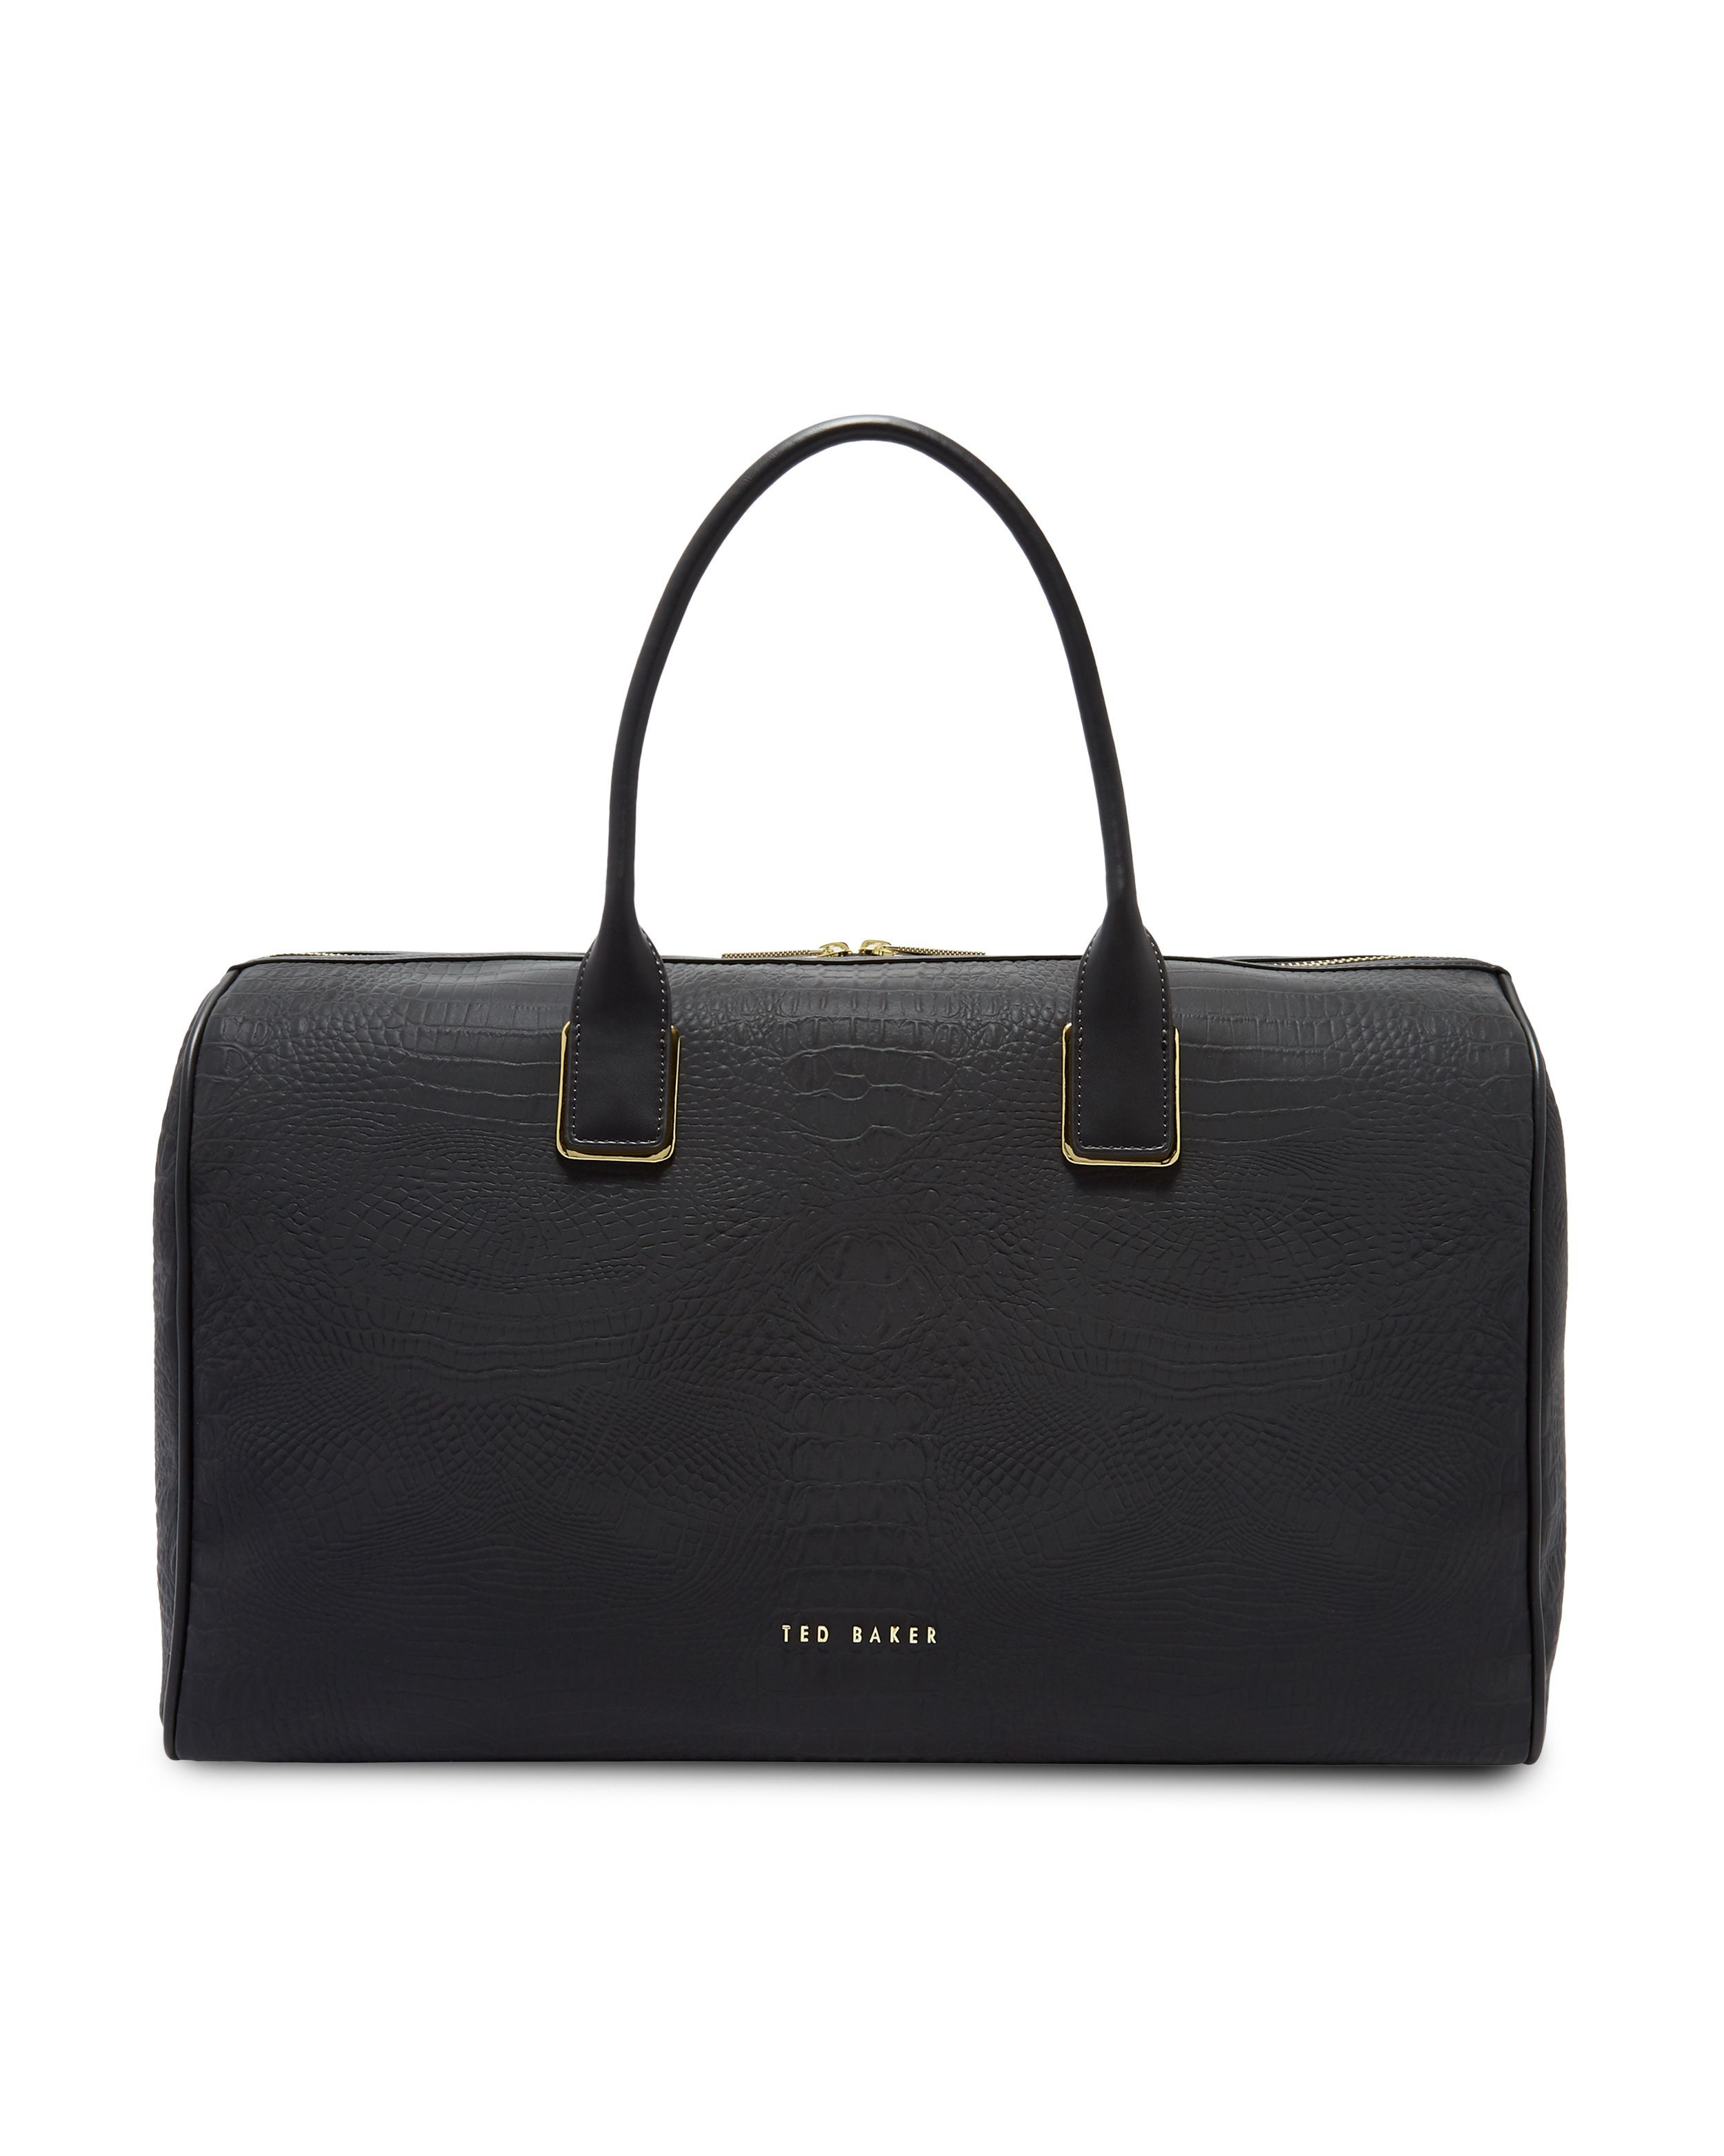 932d2cb1d Ted Baker Black Conneli Croc Embossed Duffel Bag - for use as a hospital bag  on delivery day!